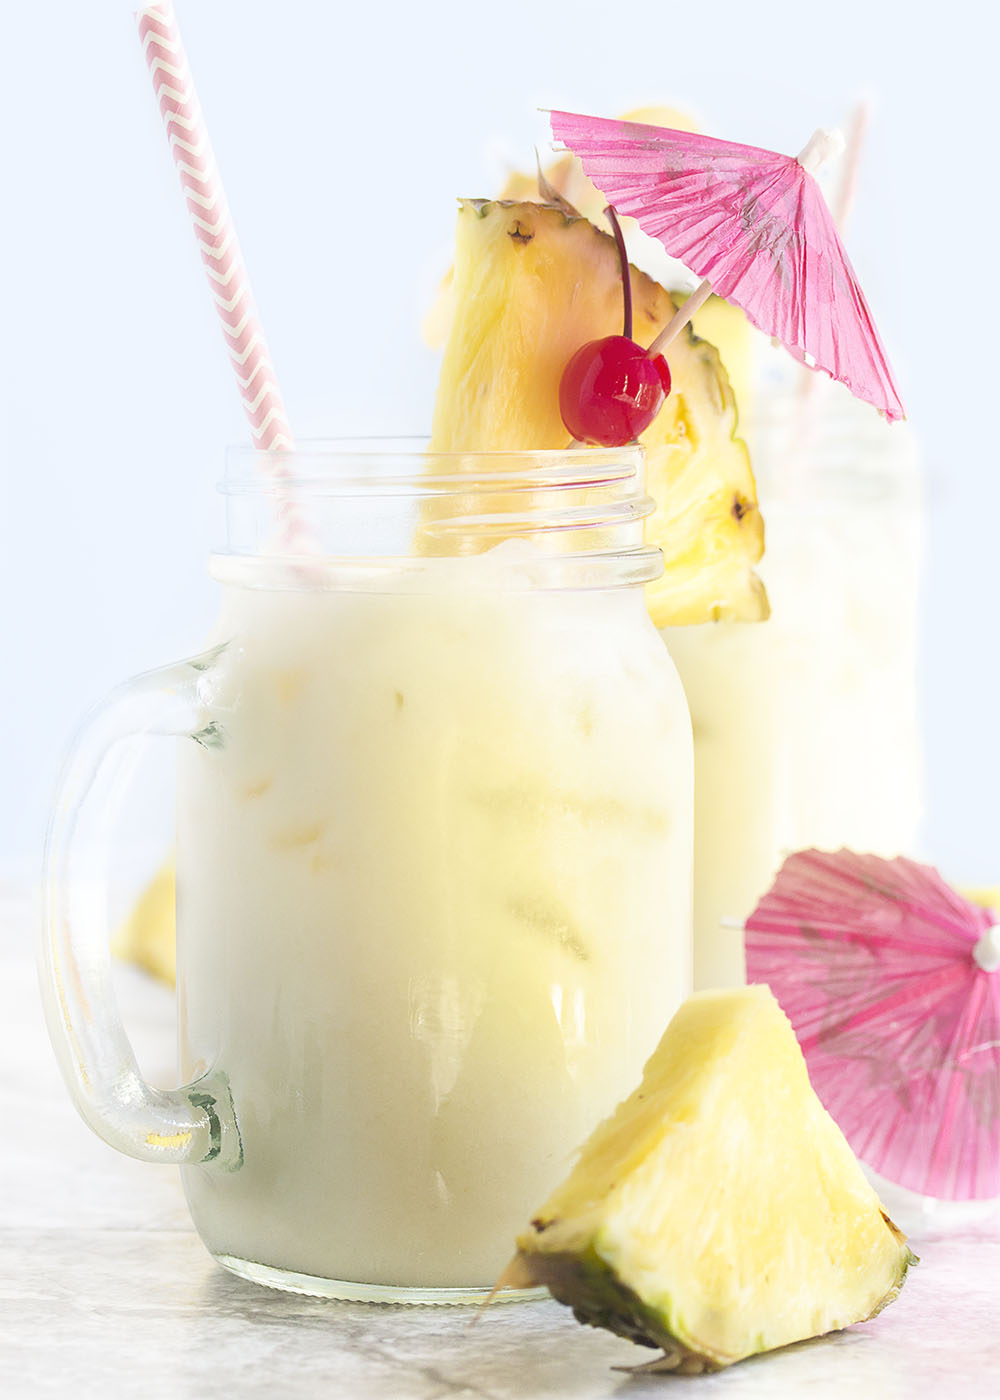 Close up of a perfect pina colada with a straw in the glass. Pineapple slices and drink umbrellas scattered about.